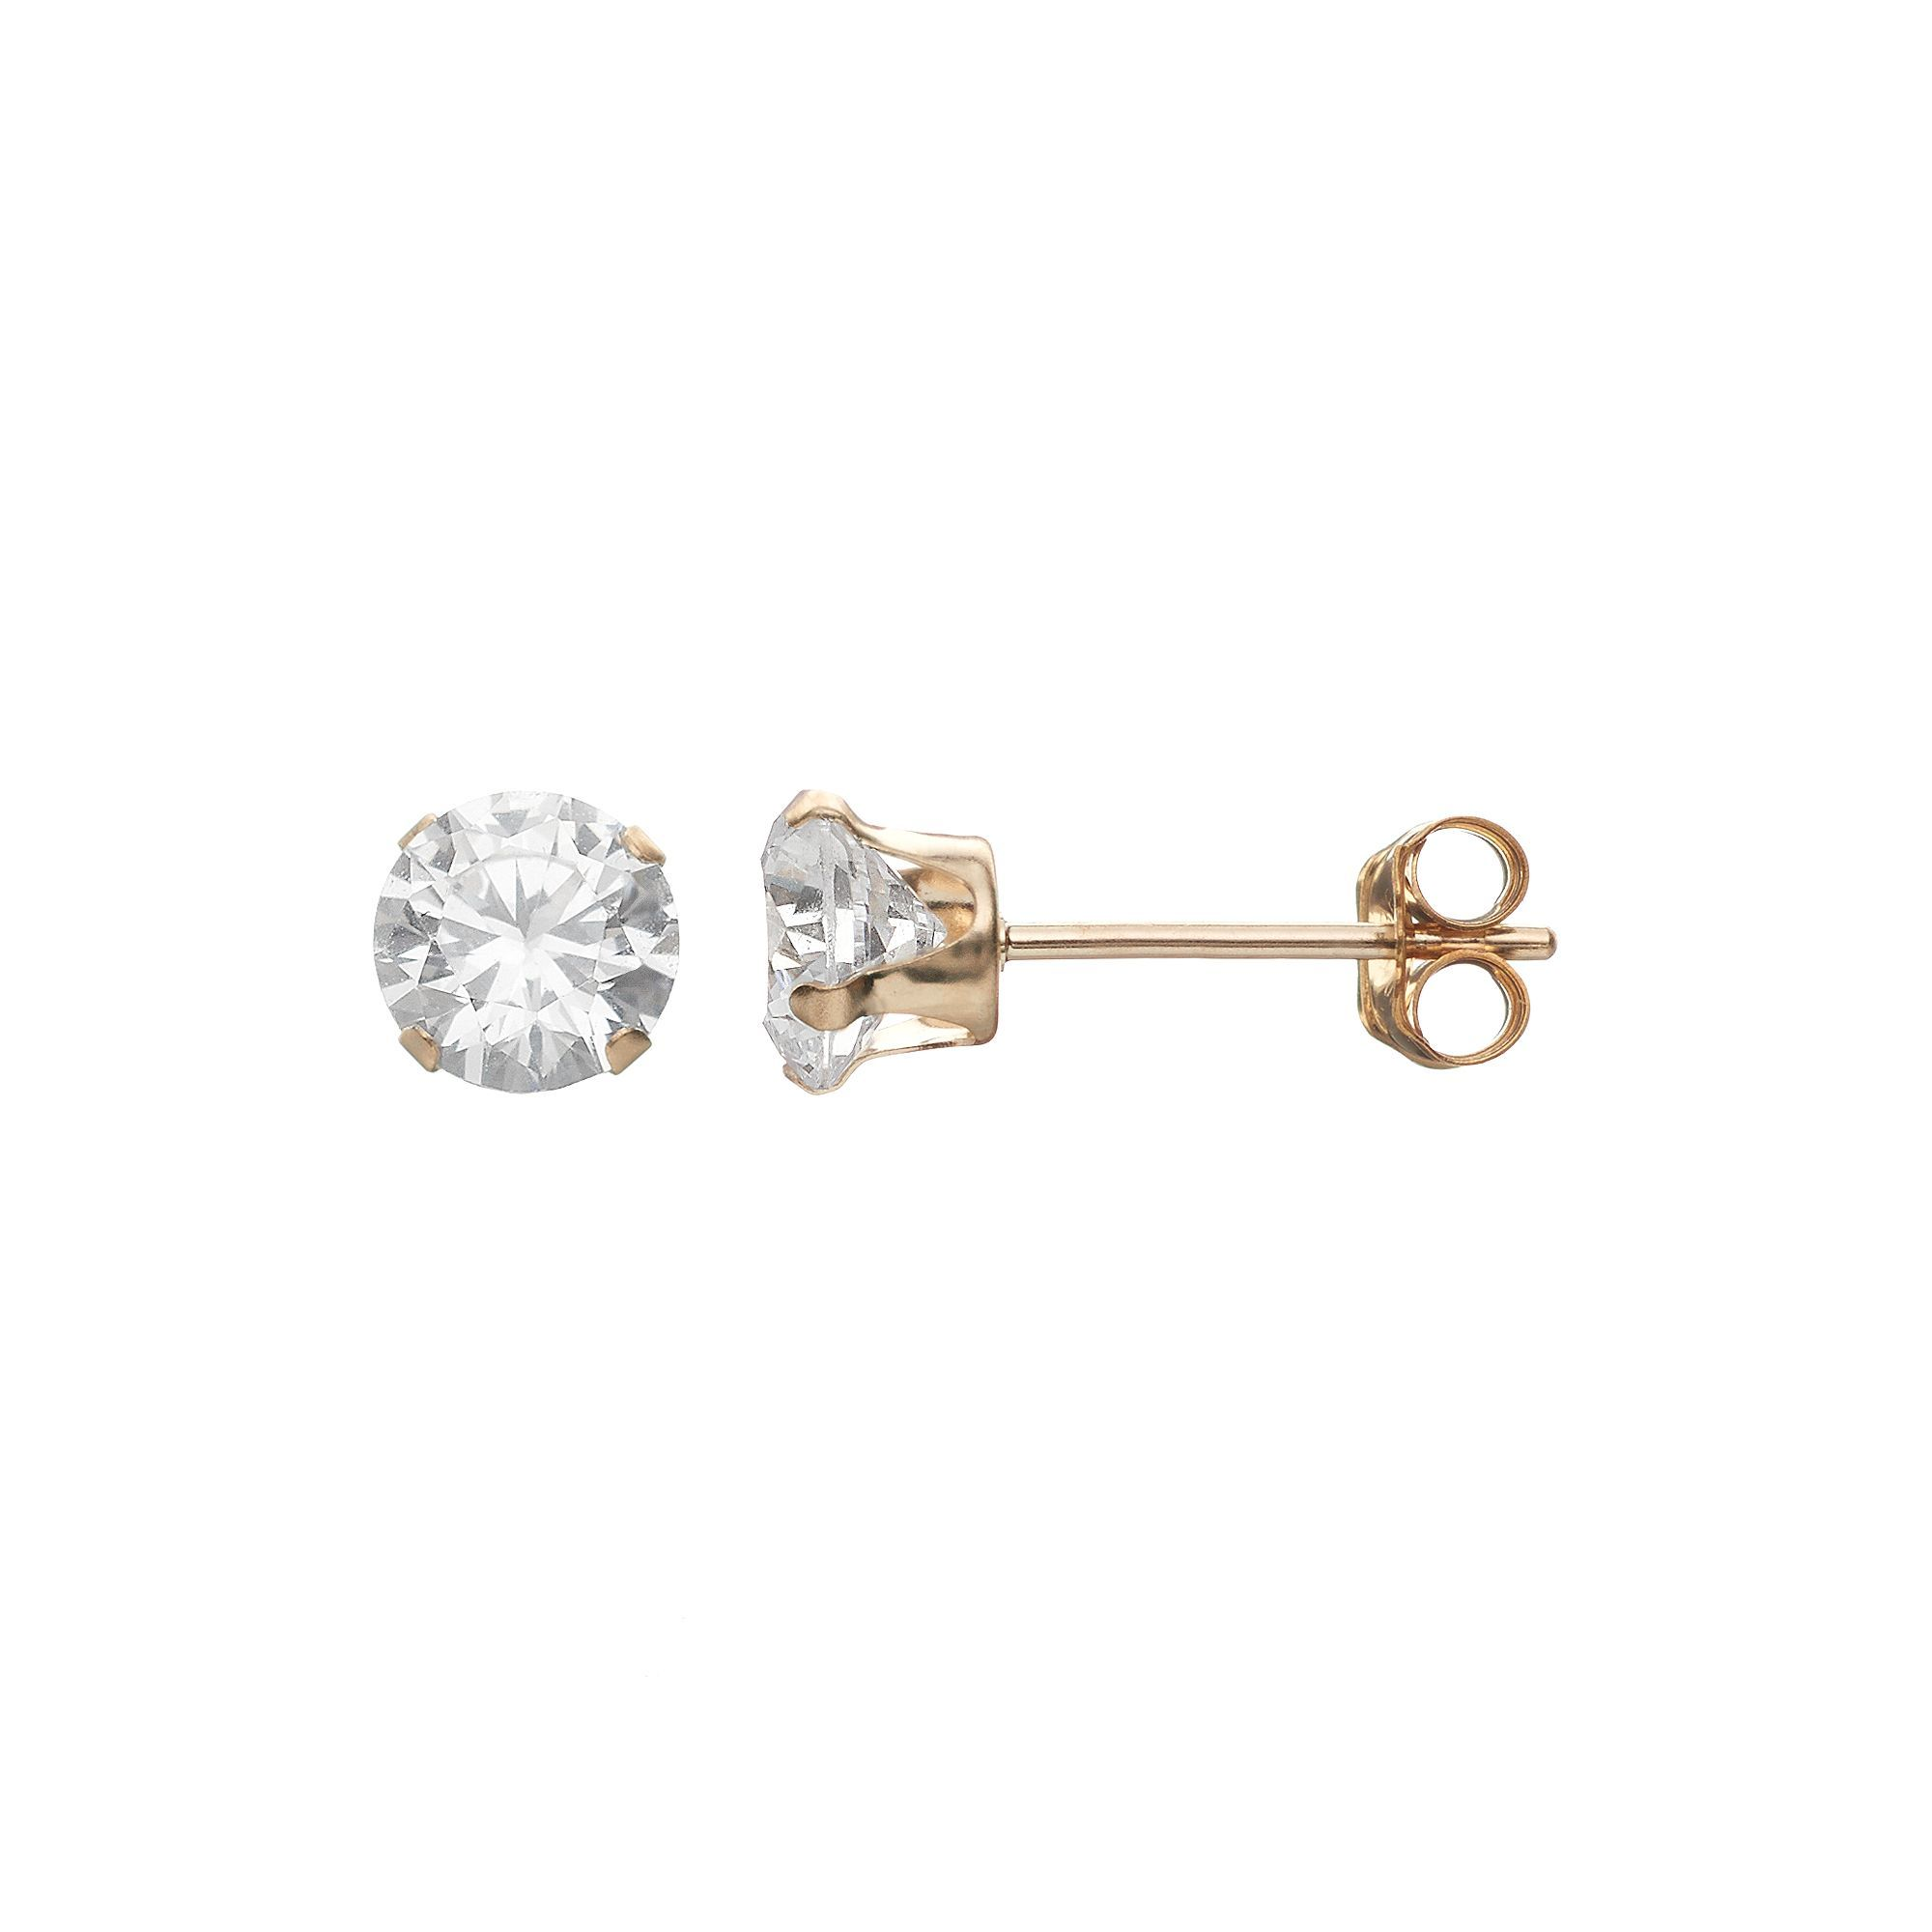 Taylor Grace Cubic Zirconia 10k Gold Stud Earrings Stud Earrings Gold Studs Earrings